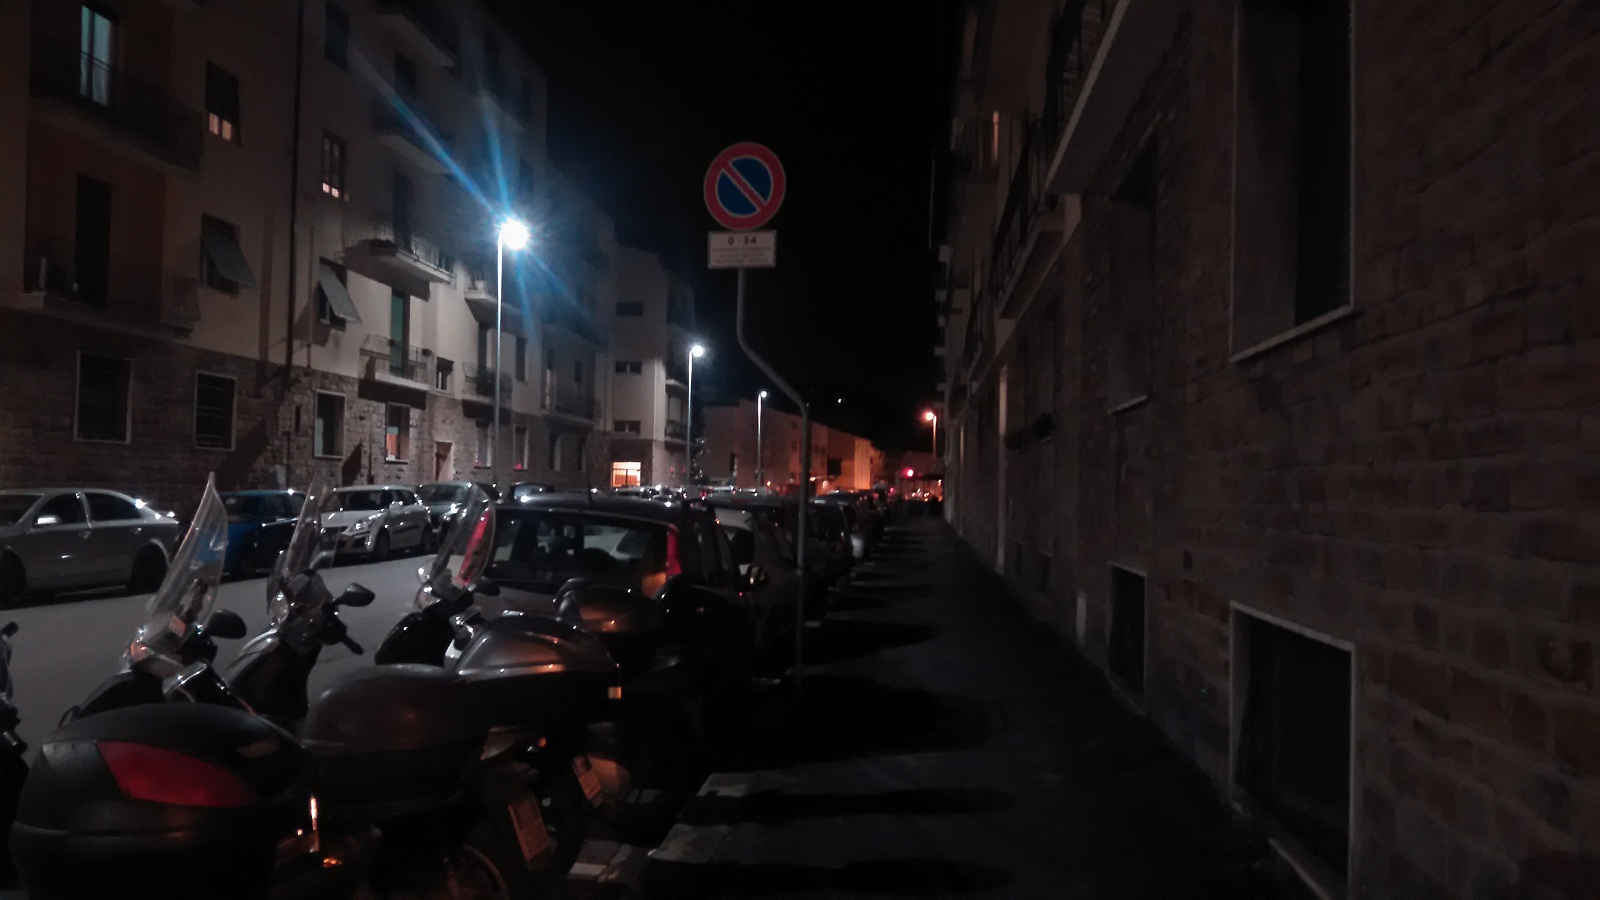 via starnina buia lampioni a led (2)